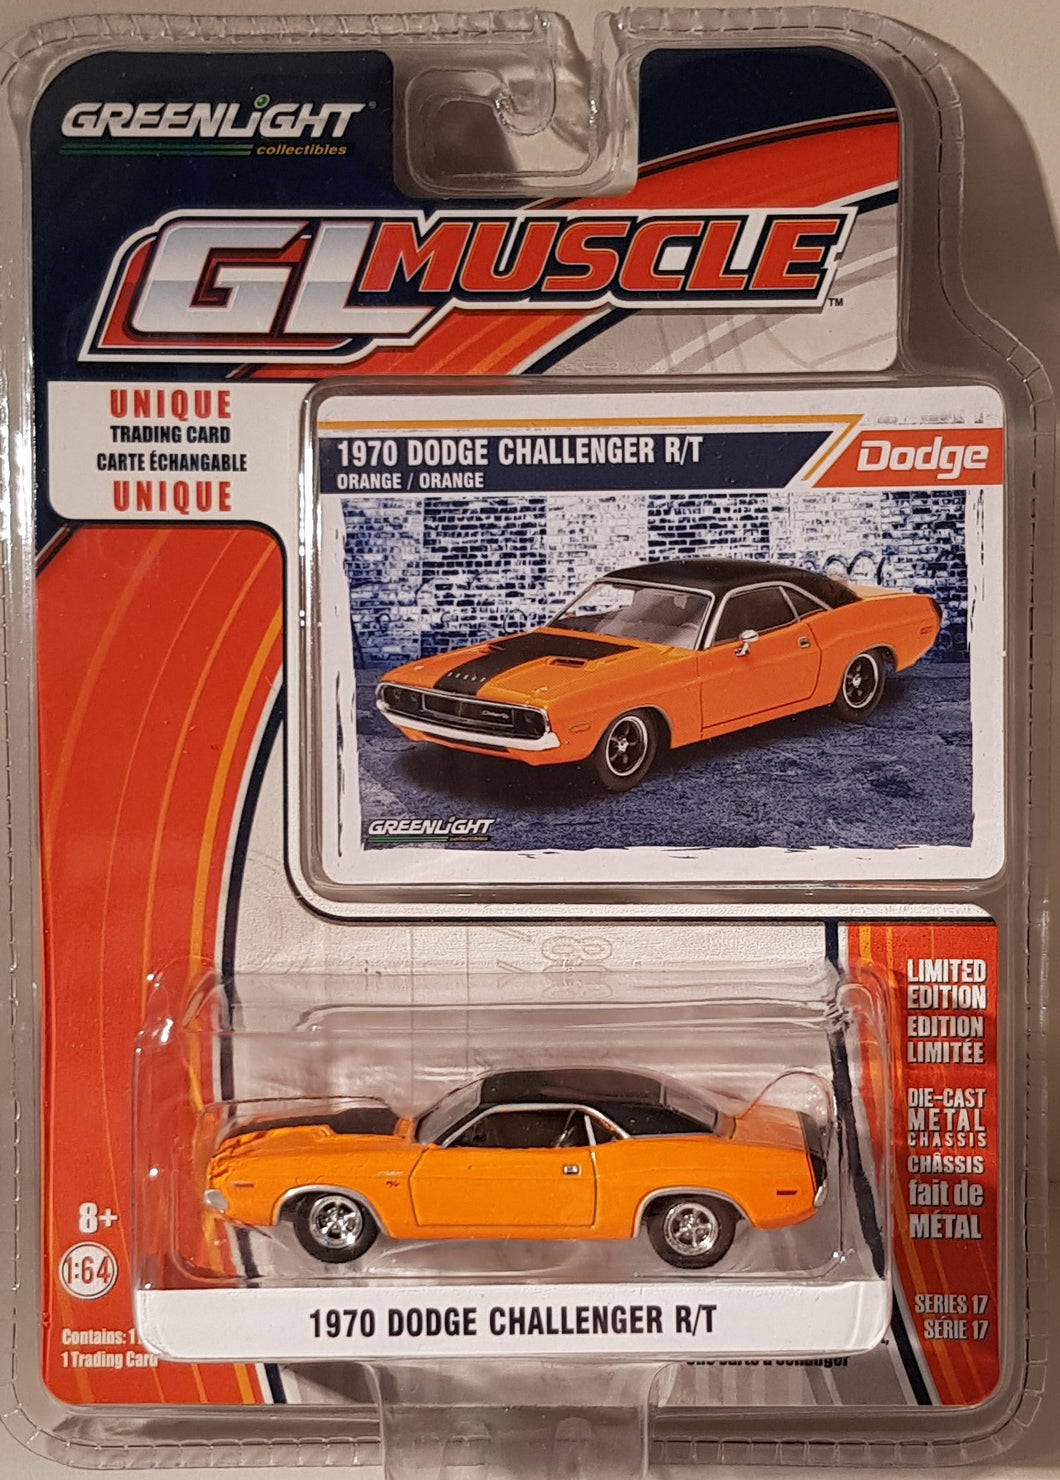 1970 Dodge Challenger R/T, Greenlight GL Muscle, 1:64 Diecast Vehicle